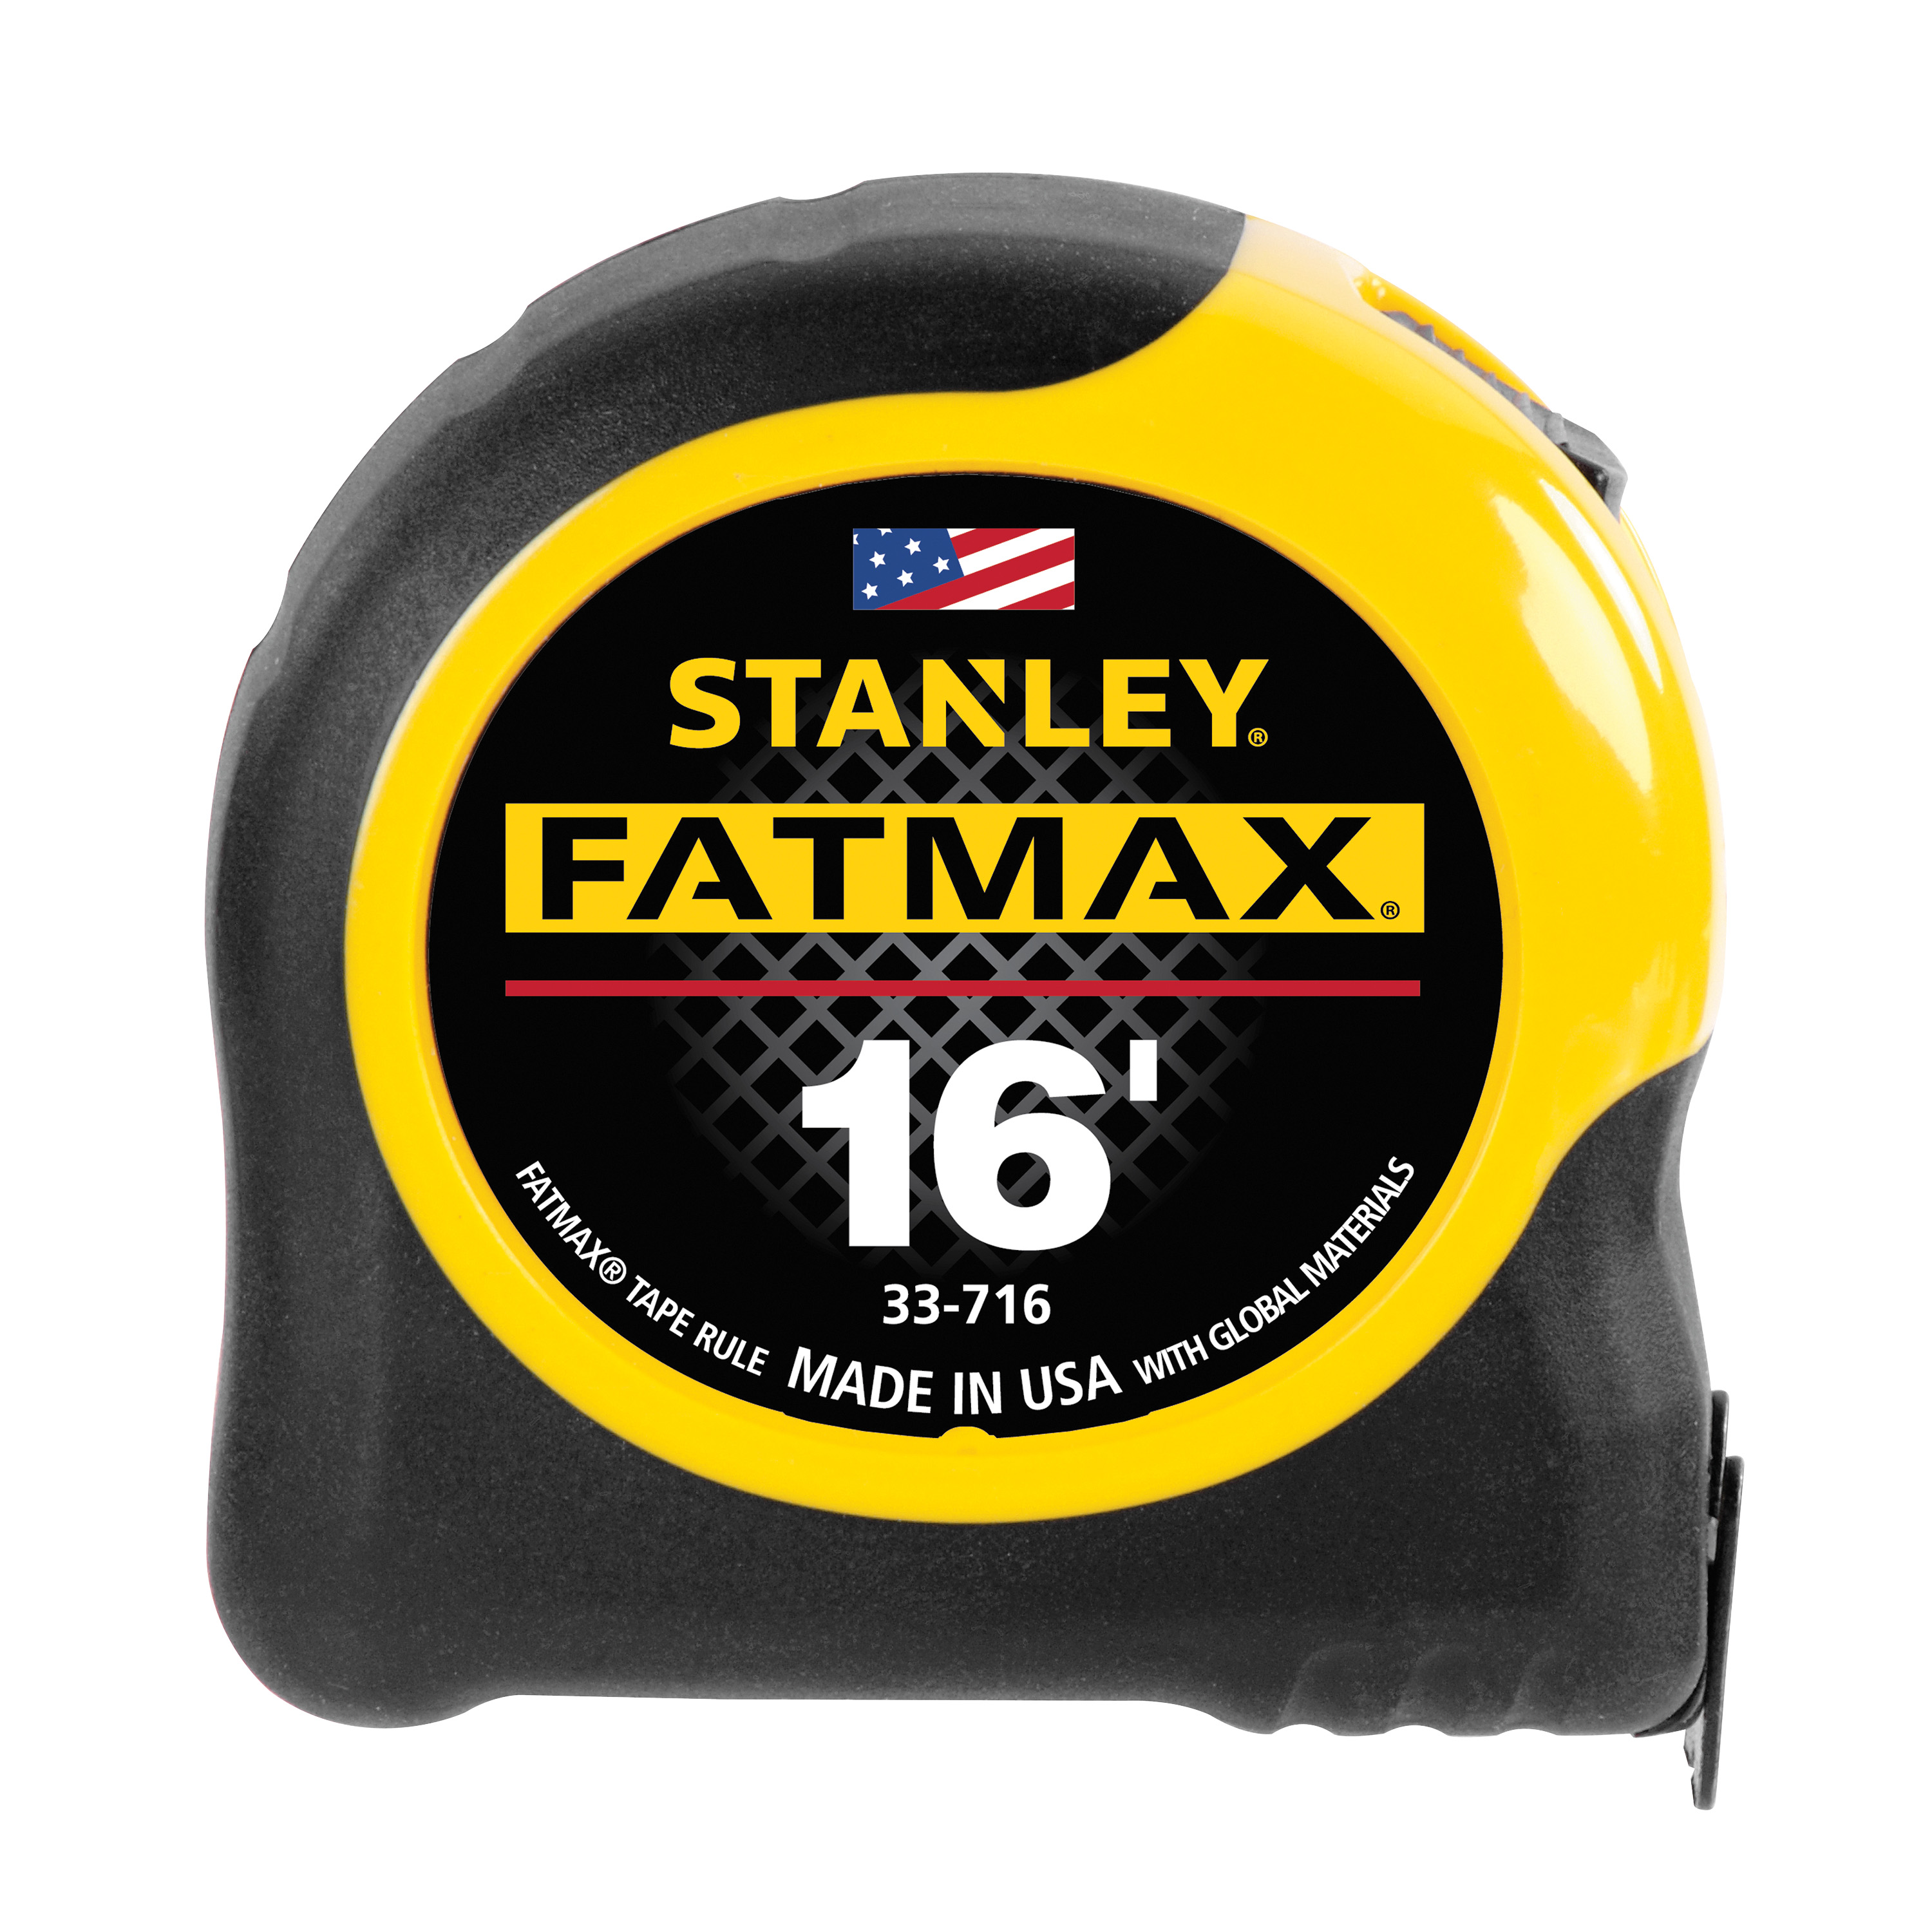 STANLEY 33-716 FatMax Blade Armor Reinforced Tape Measure, 1 1/4in x 16ft